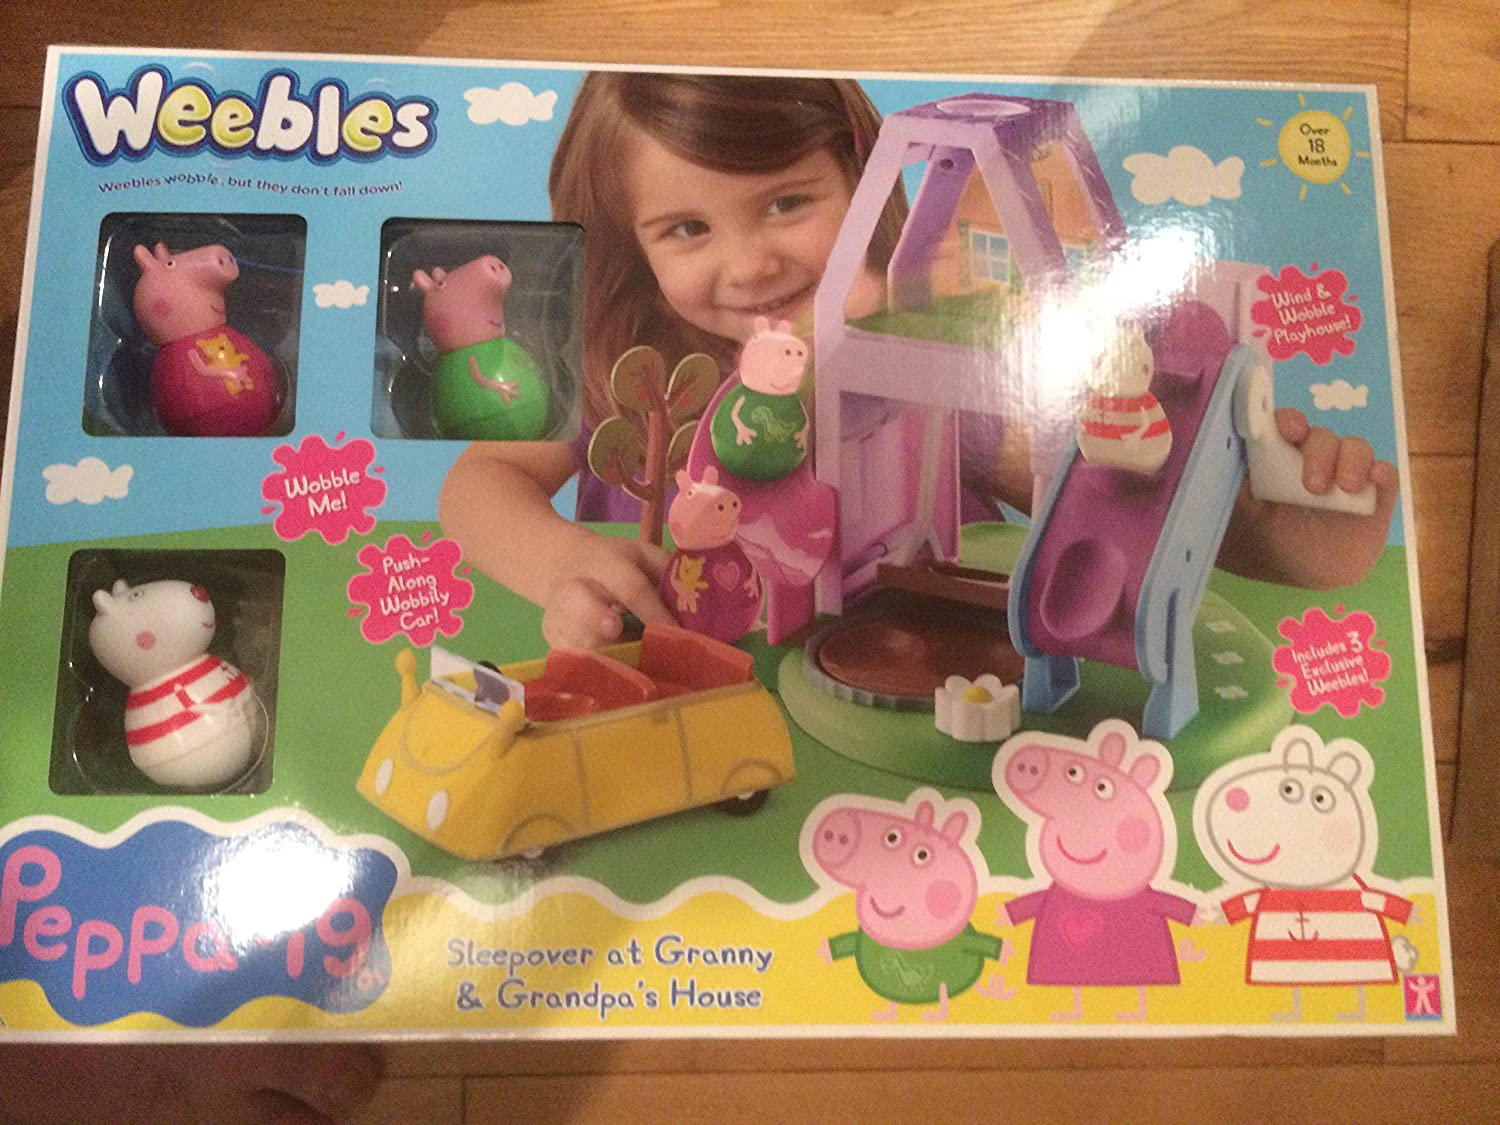 Peppa Pig Weebles abuela y abuelo casa Set: Amazon.es: Bebé